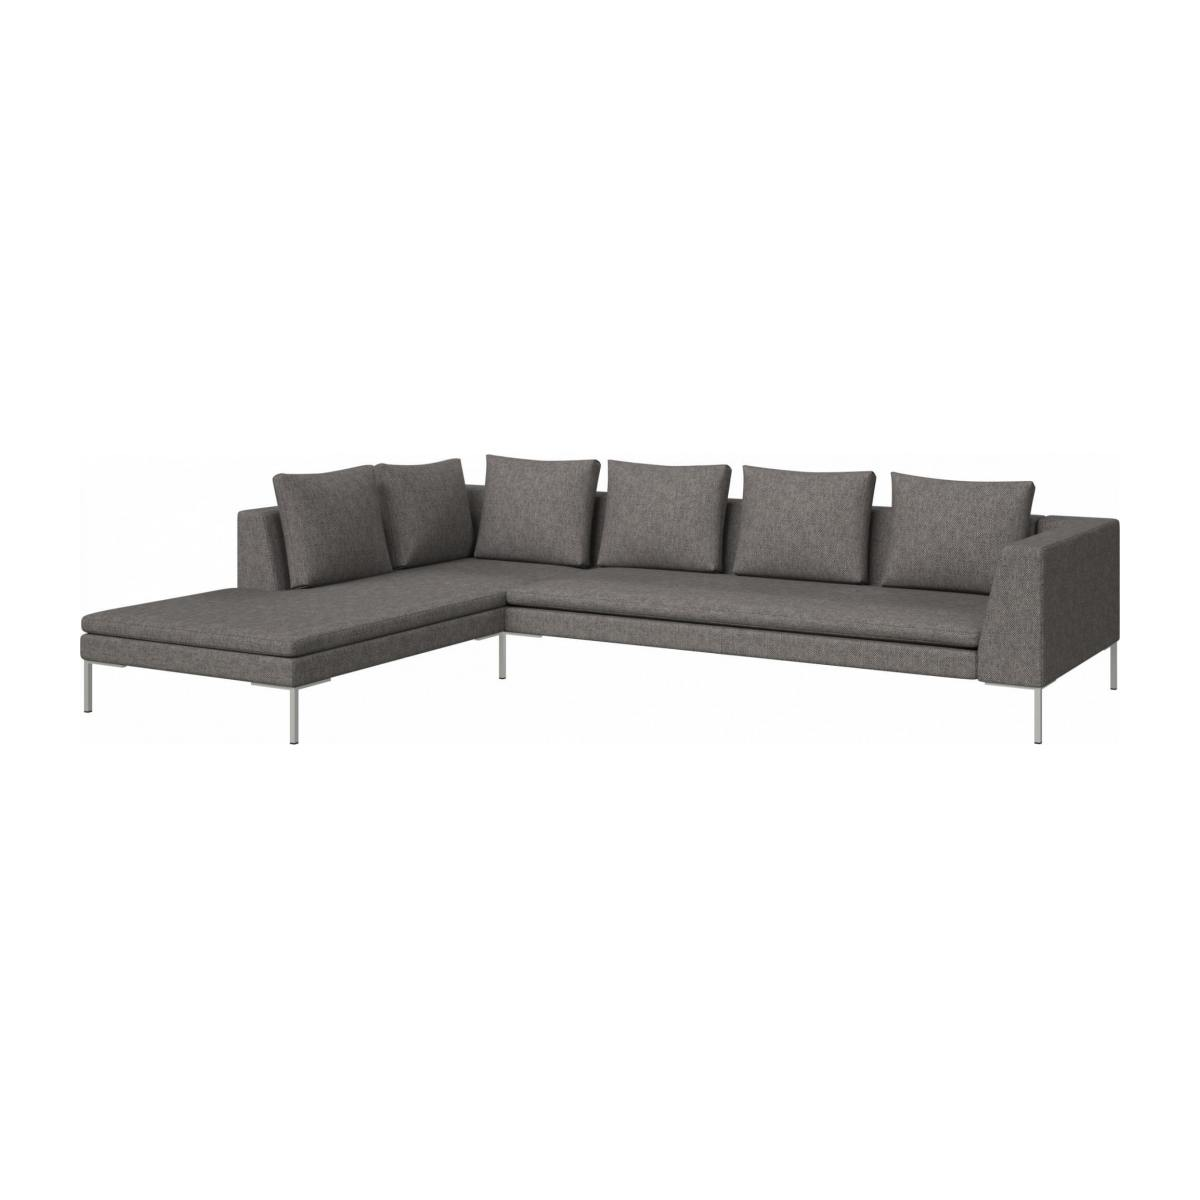 3 seater sofa with chaise longue on the left in Bellagio fabric, night black  n°2